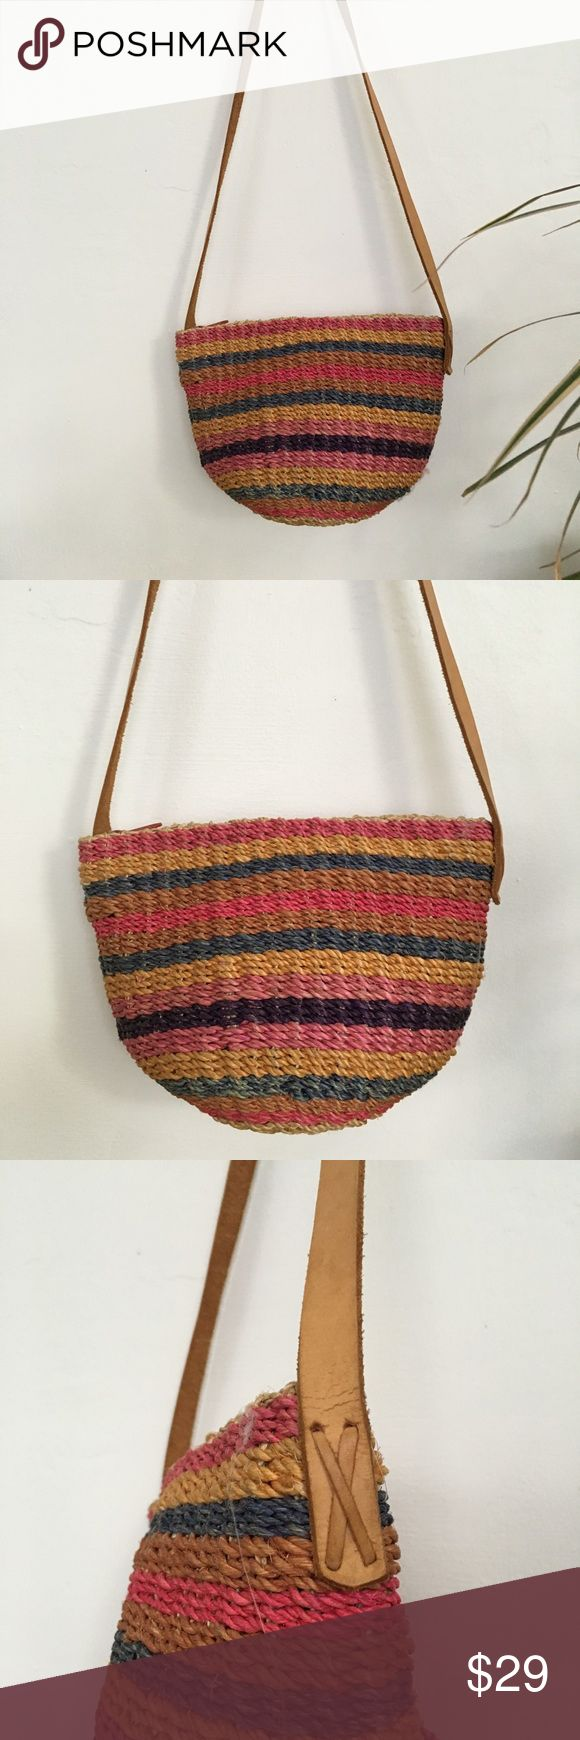 VINTAGE Woven Beach Bag Vintage Woven raffia/cotton beach bag in shades of pink, blue and yellow. Vintage Bags Mini Bags